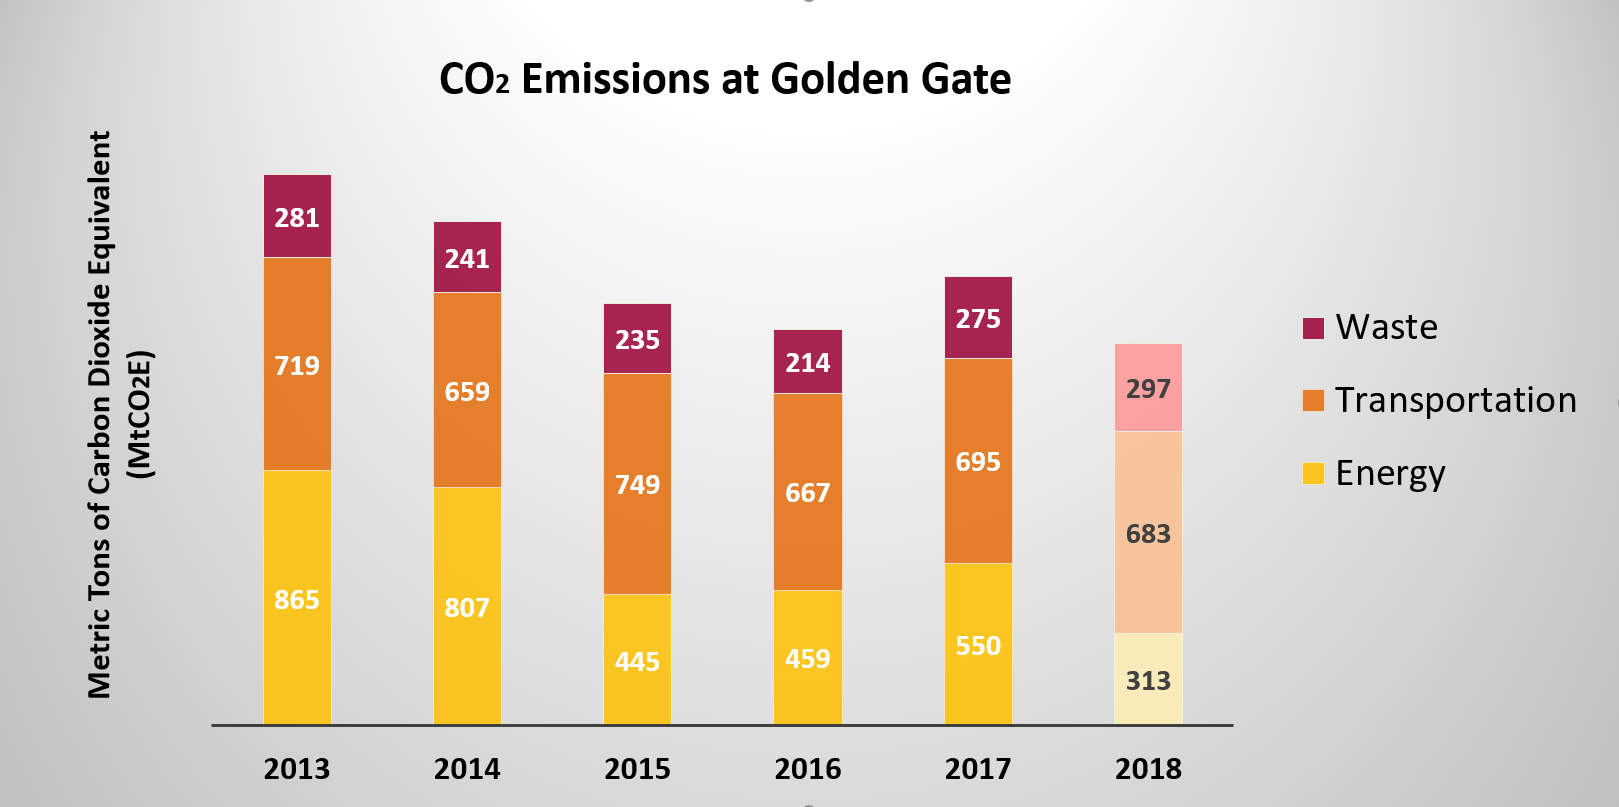 Carbon footprint for 2018